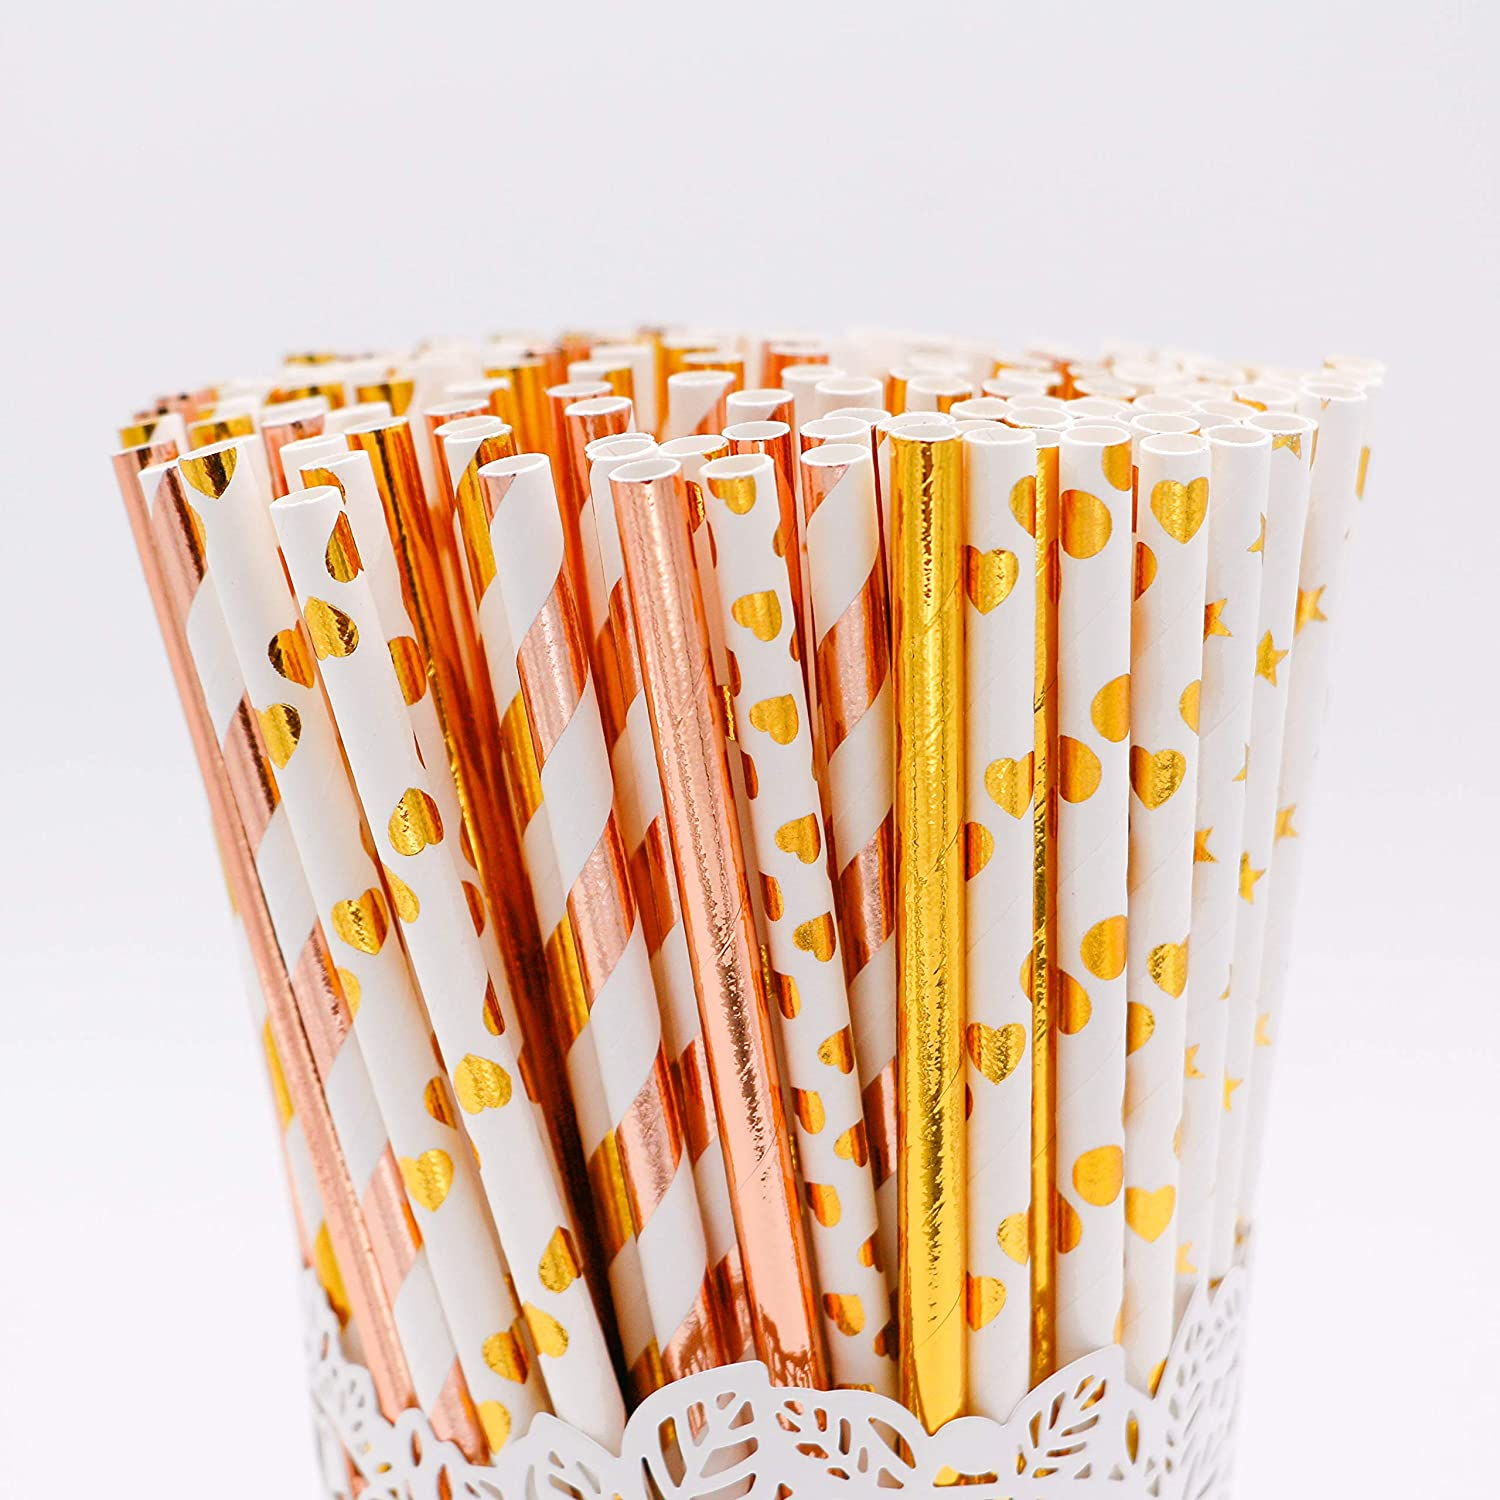 Minibaaa 200-Pack Surprise price Biodegradable Gold Straws Paper 7 Oakland Mall Rose